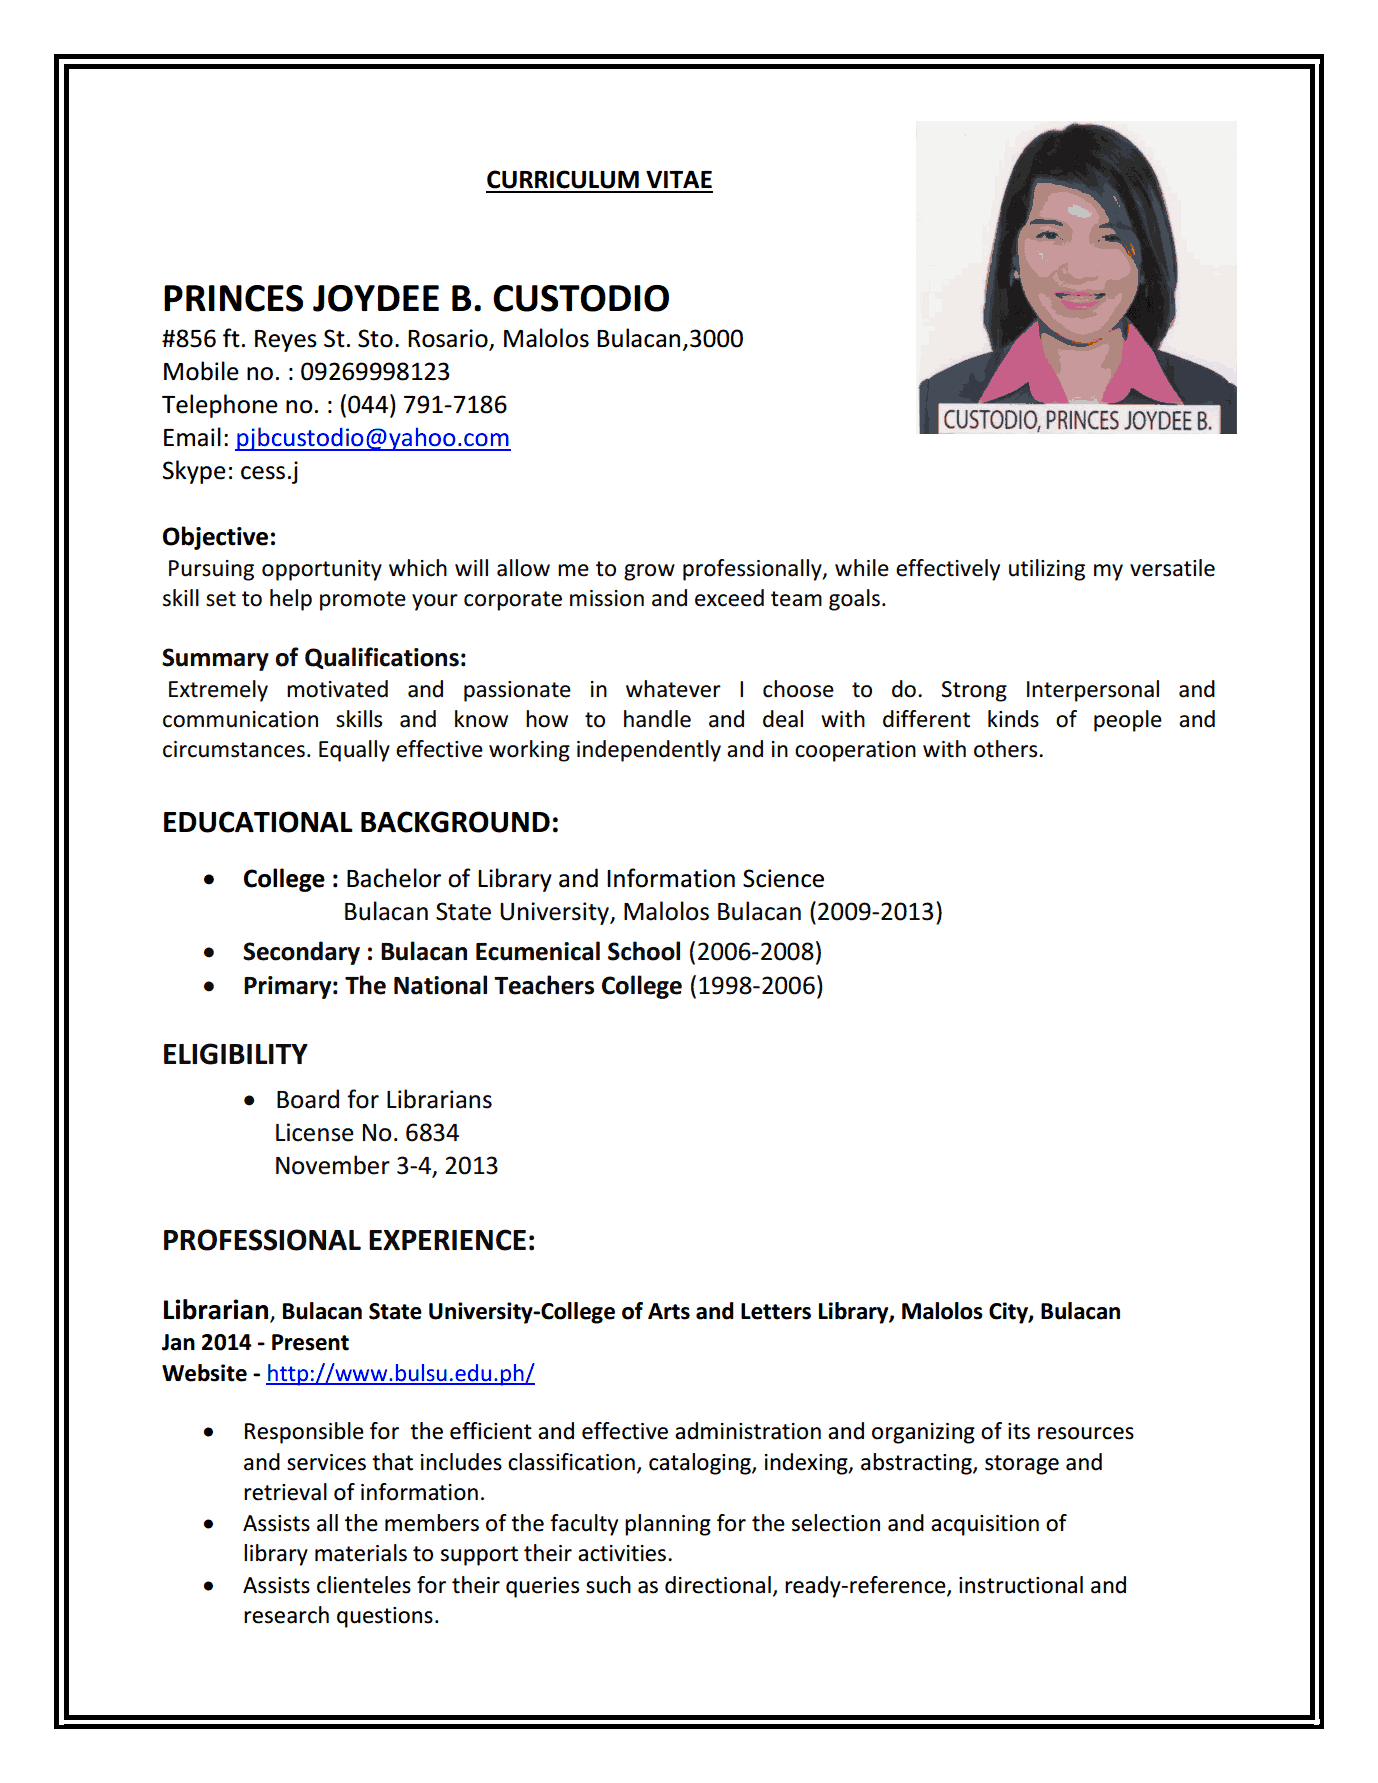 Resume Format Examples For Job | Resume Format | Pinterest | Job ...